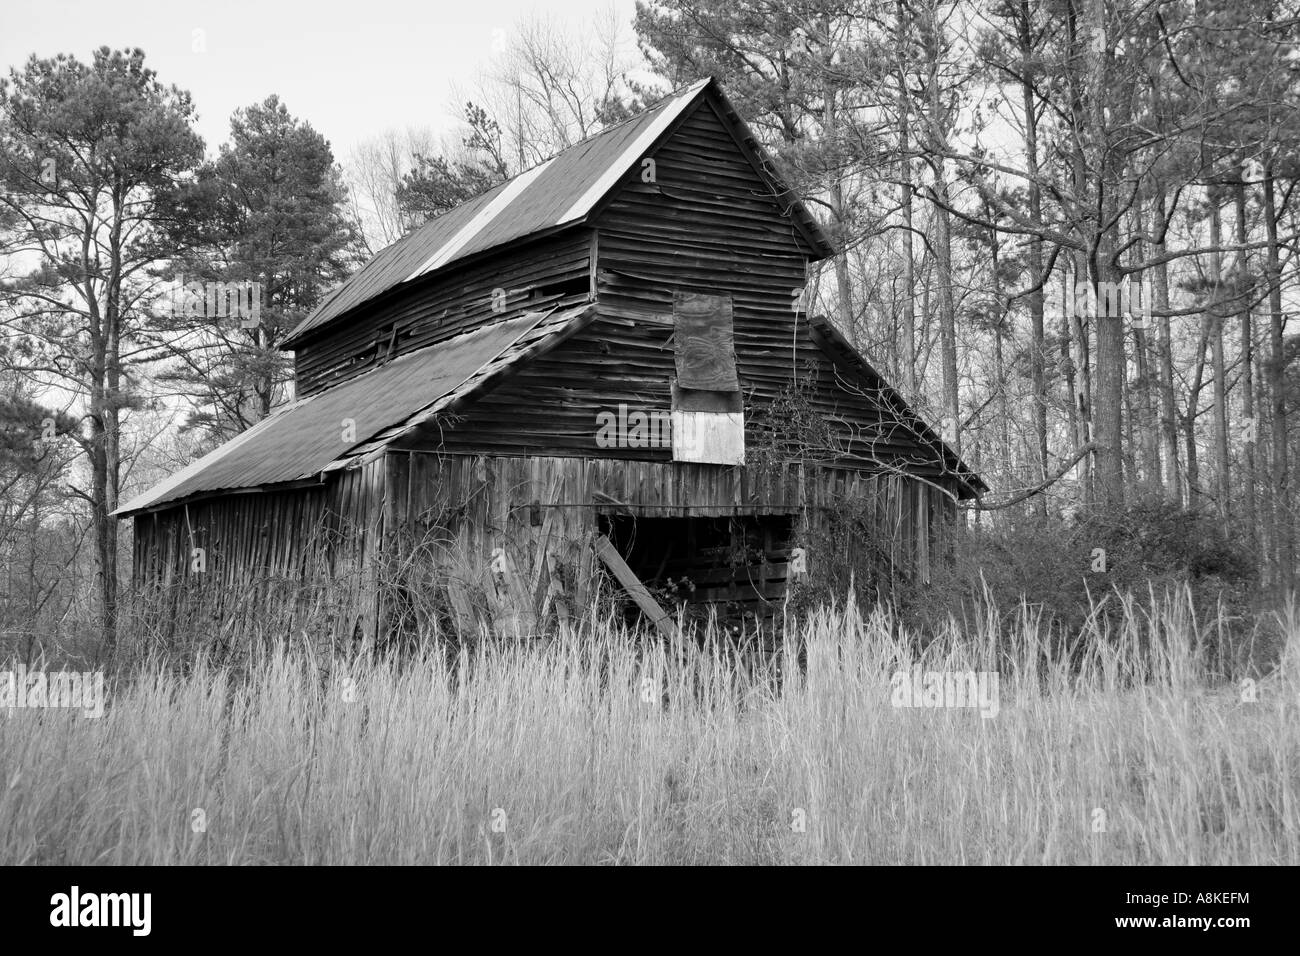 Old Barn With High Grass In Foreground And Trees In Background In Stock Photo Alamy